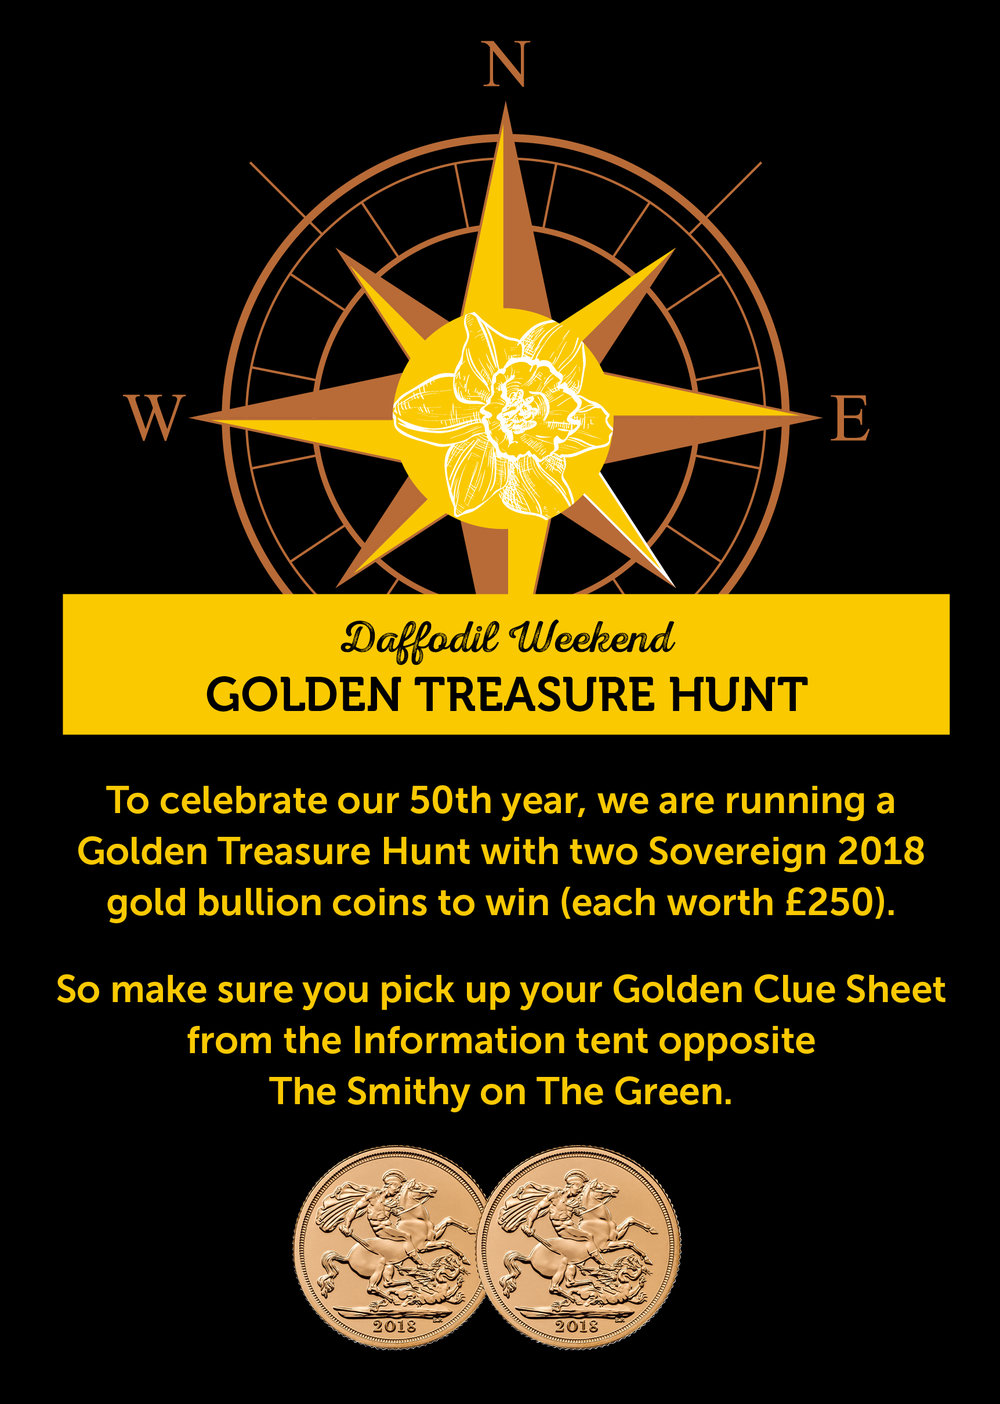 Golden treasure hunt.jpg